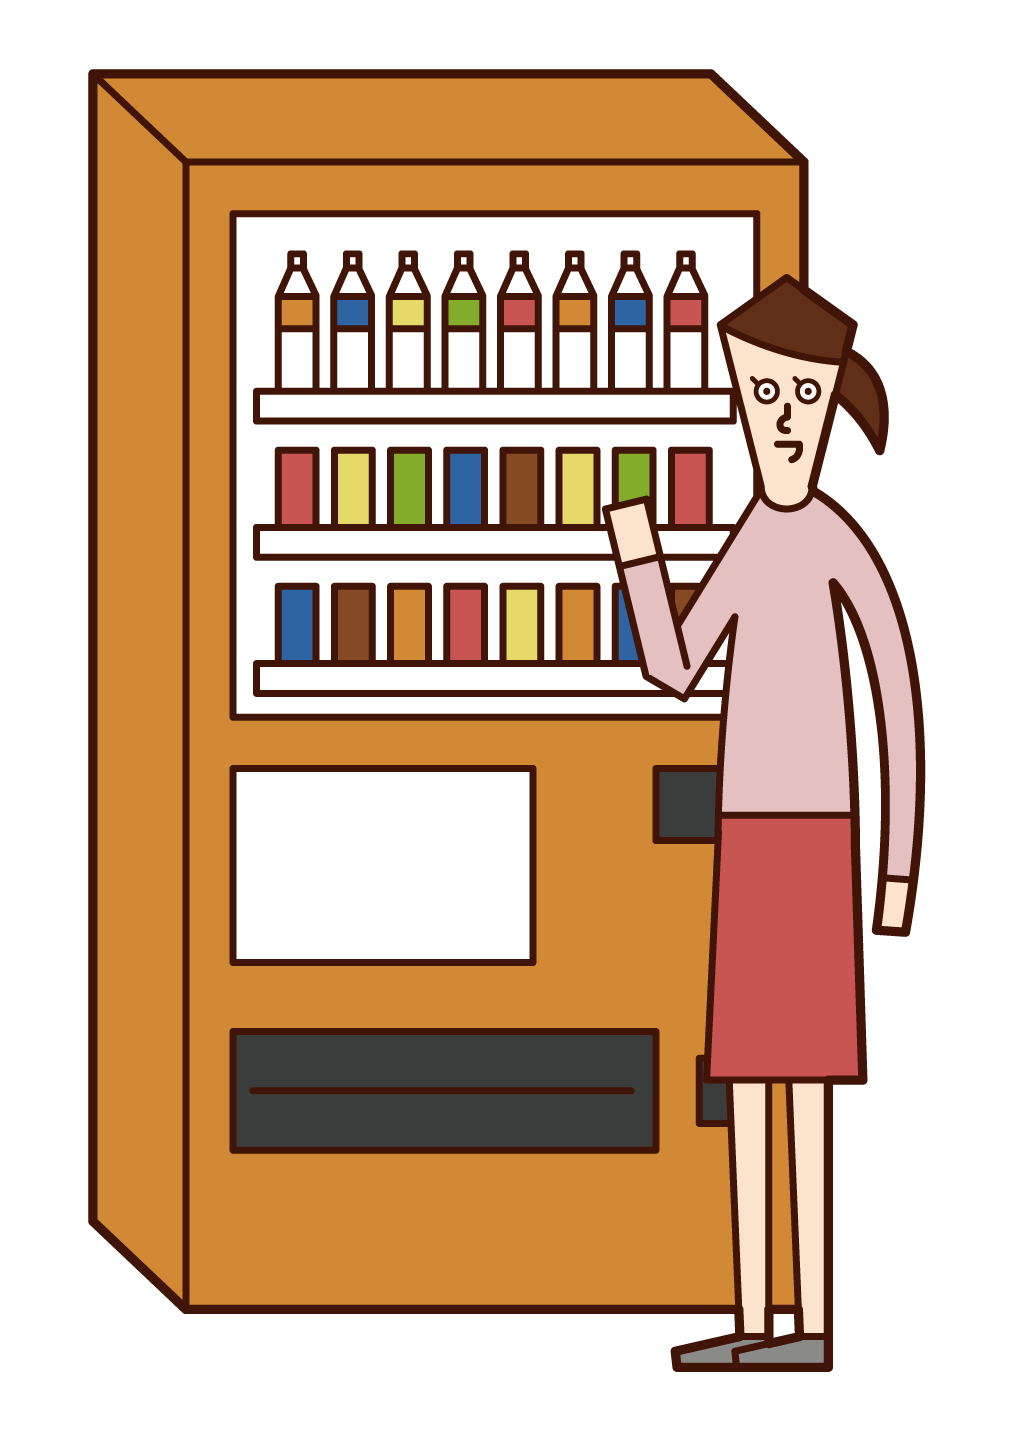 Illustration of a woman buying a drink from a vending machine